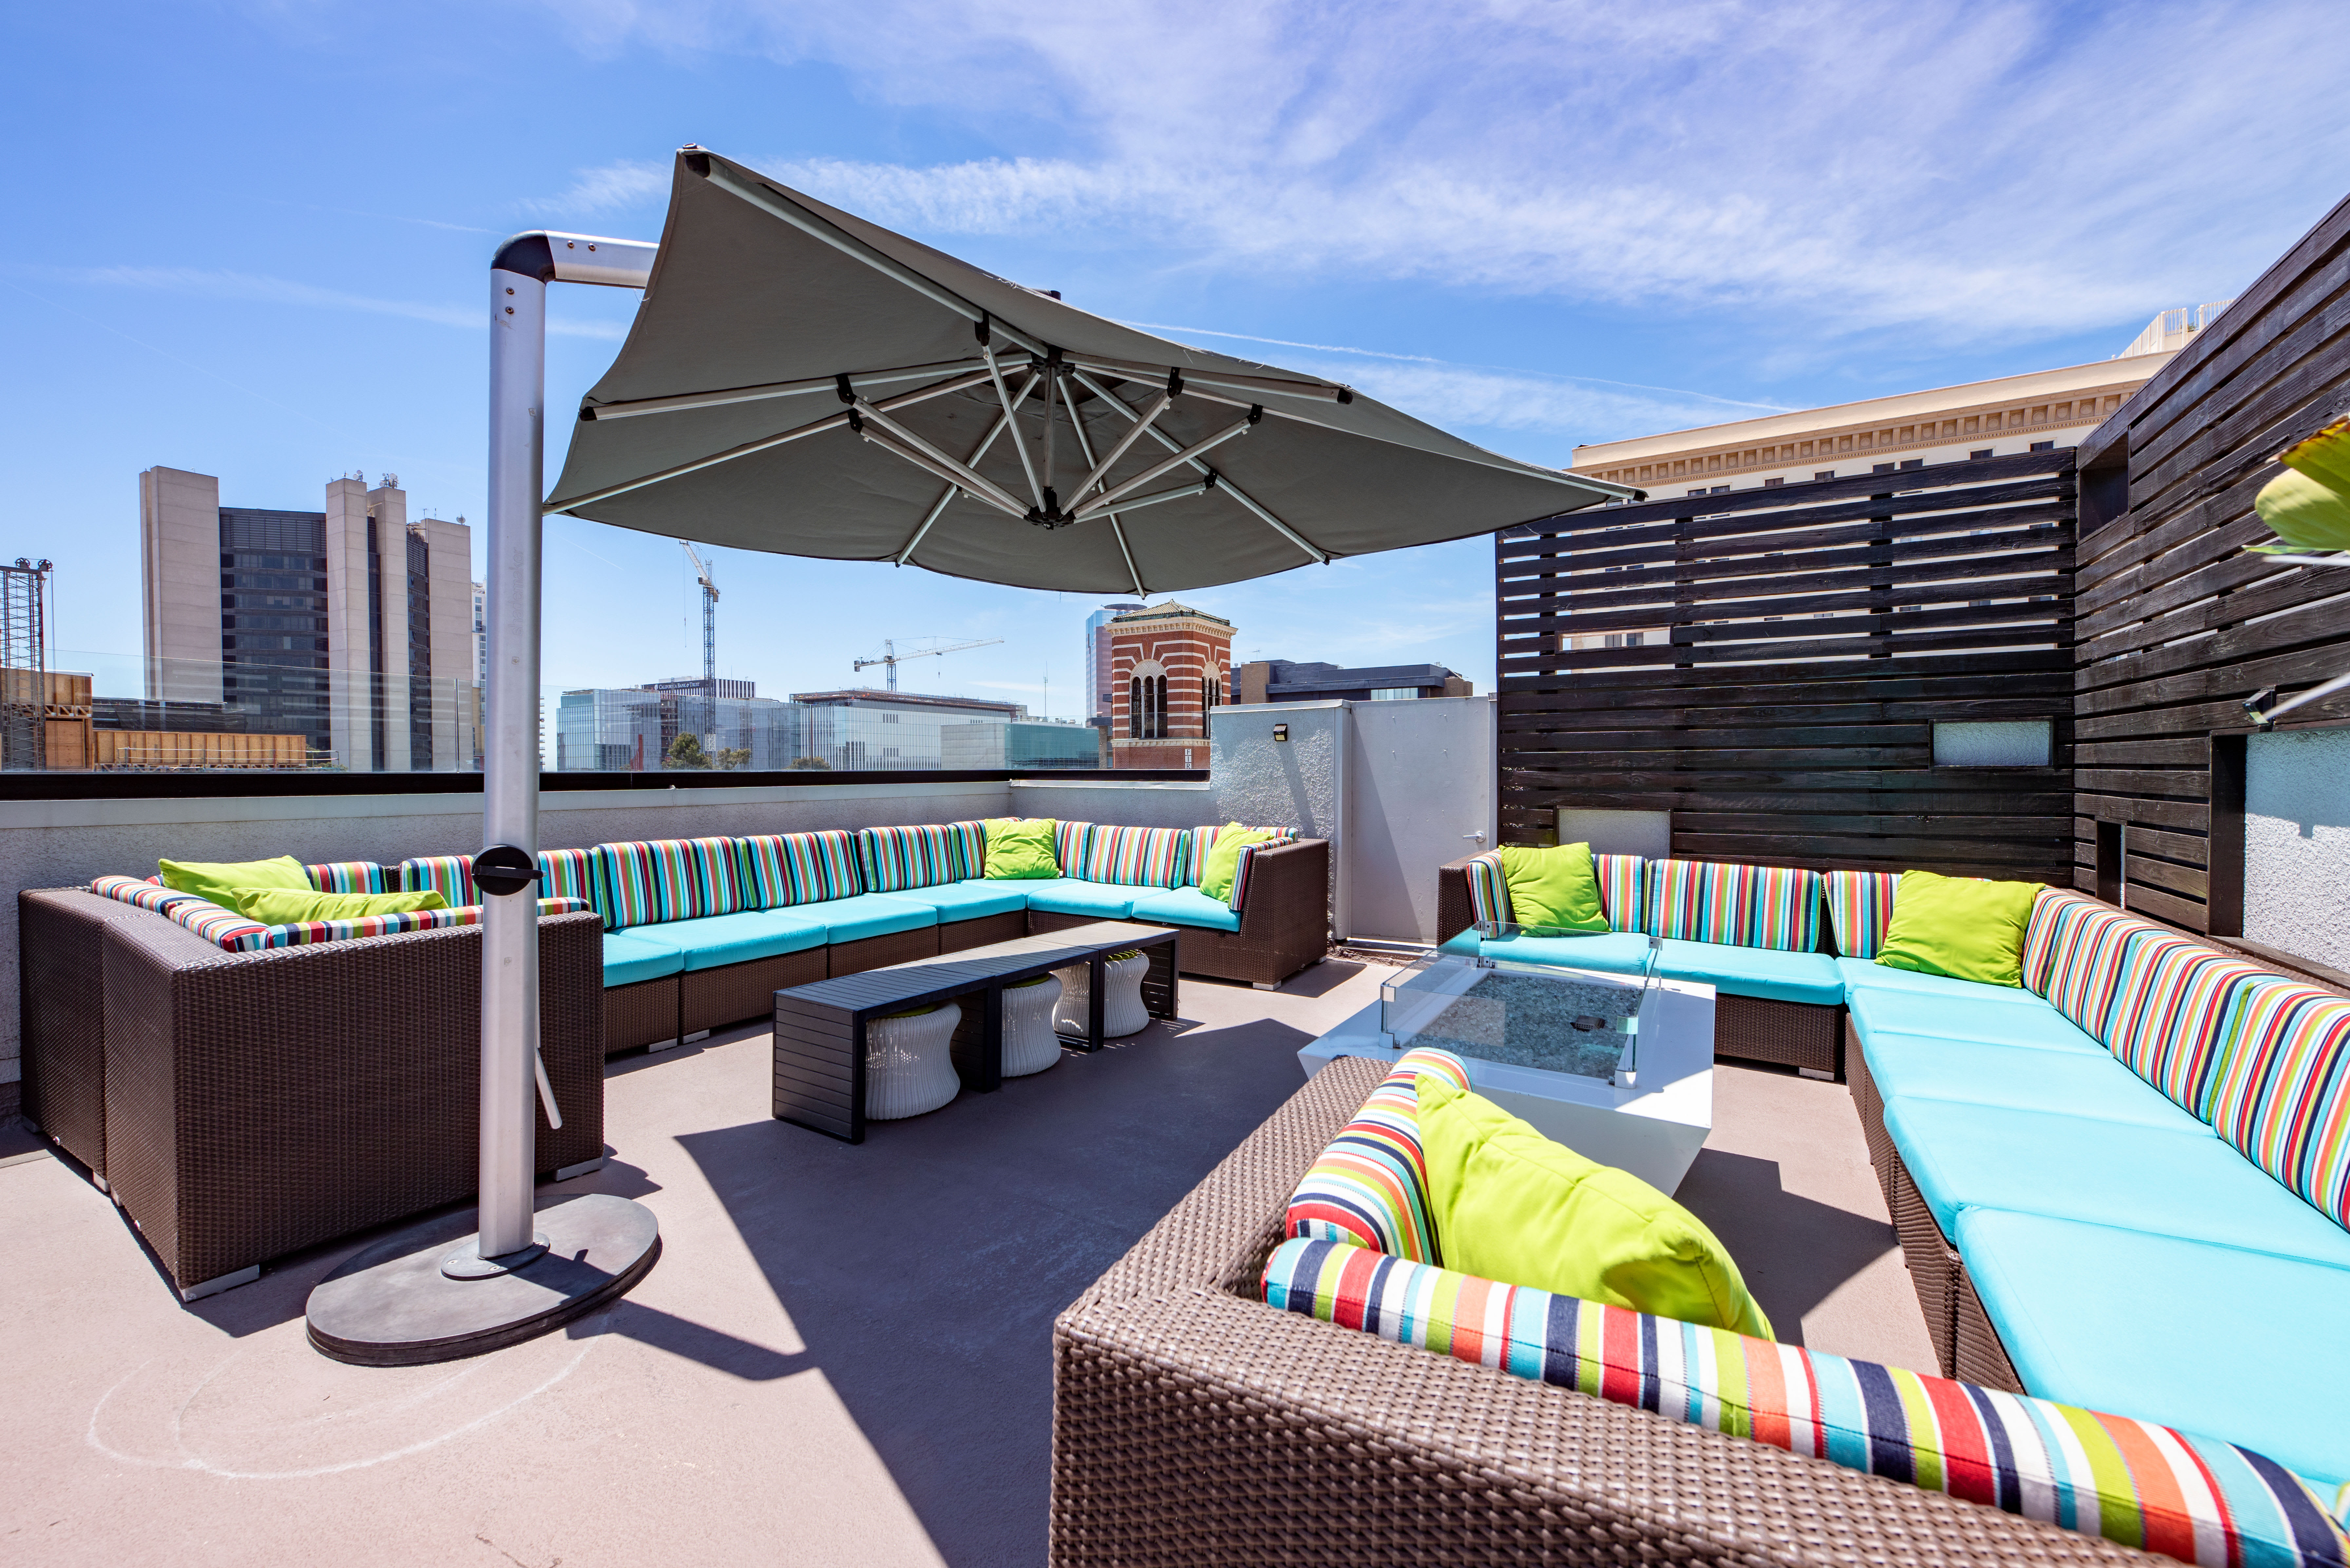 Outdoor Amenities at Sofi at 3rd in Long Beach, CA